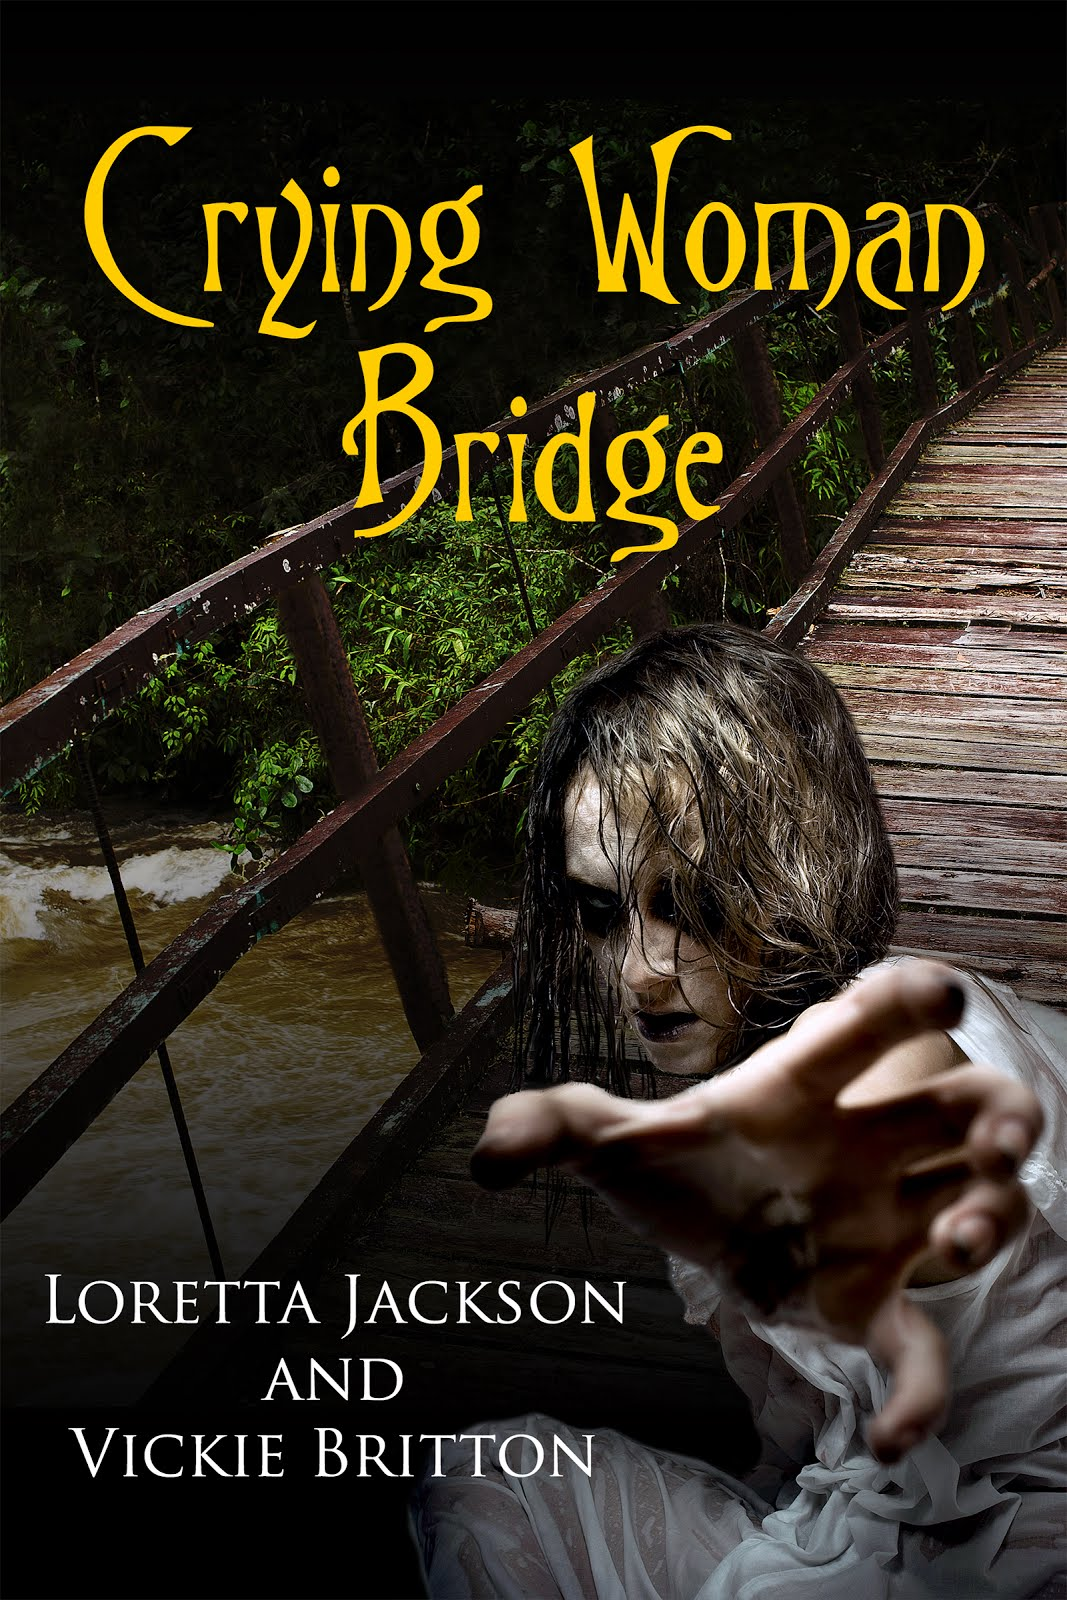 READ FREE Sept 15-19! CRYING WOMAN BRIDGE A HIGH COUNTRY MYSTERY!